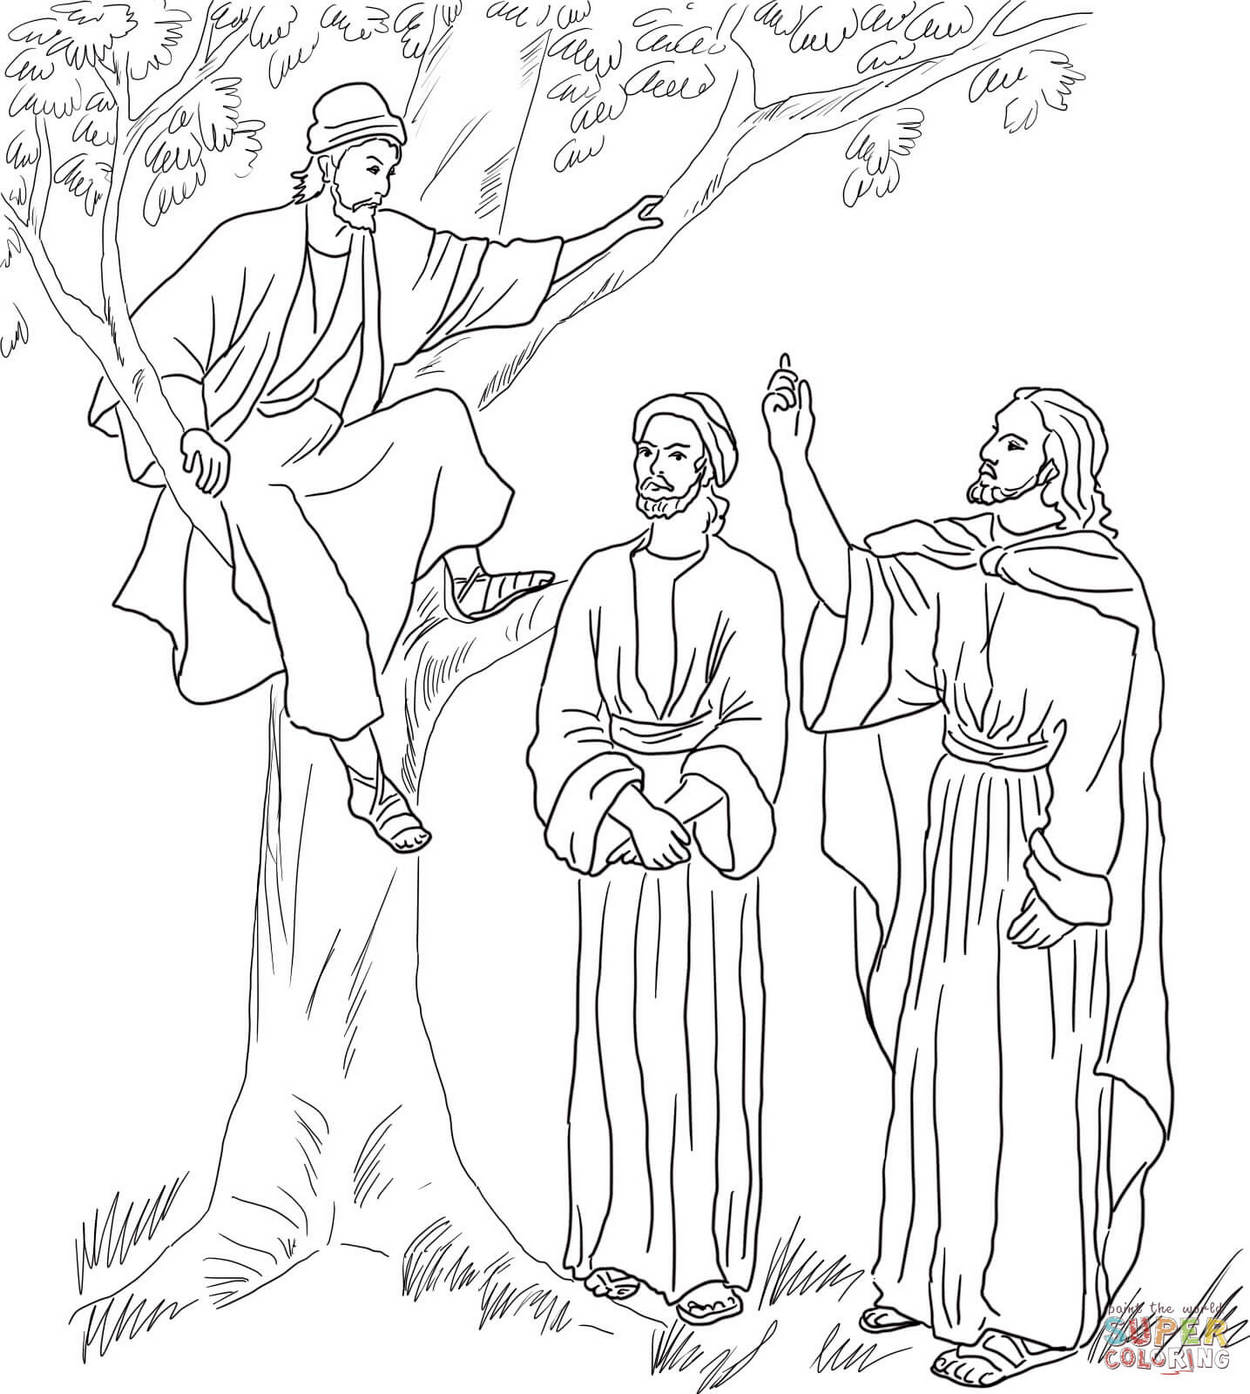 zacchaeus-tree-coloring-page-printable